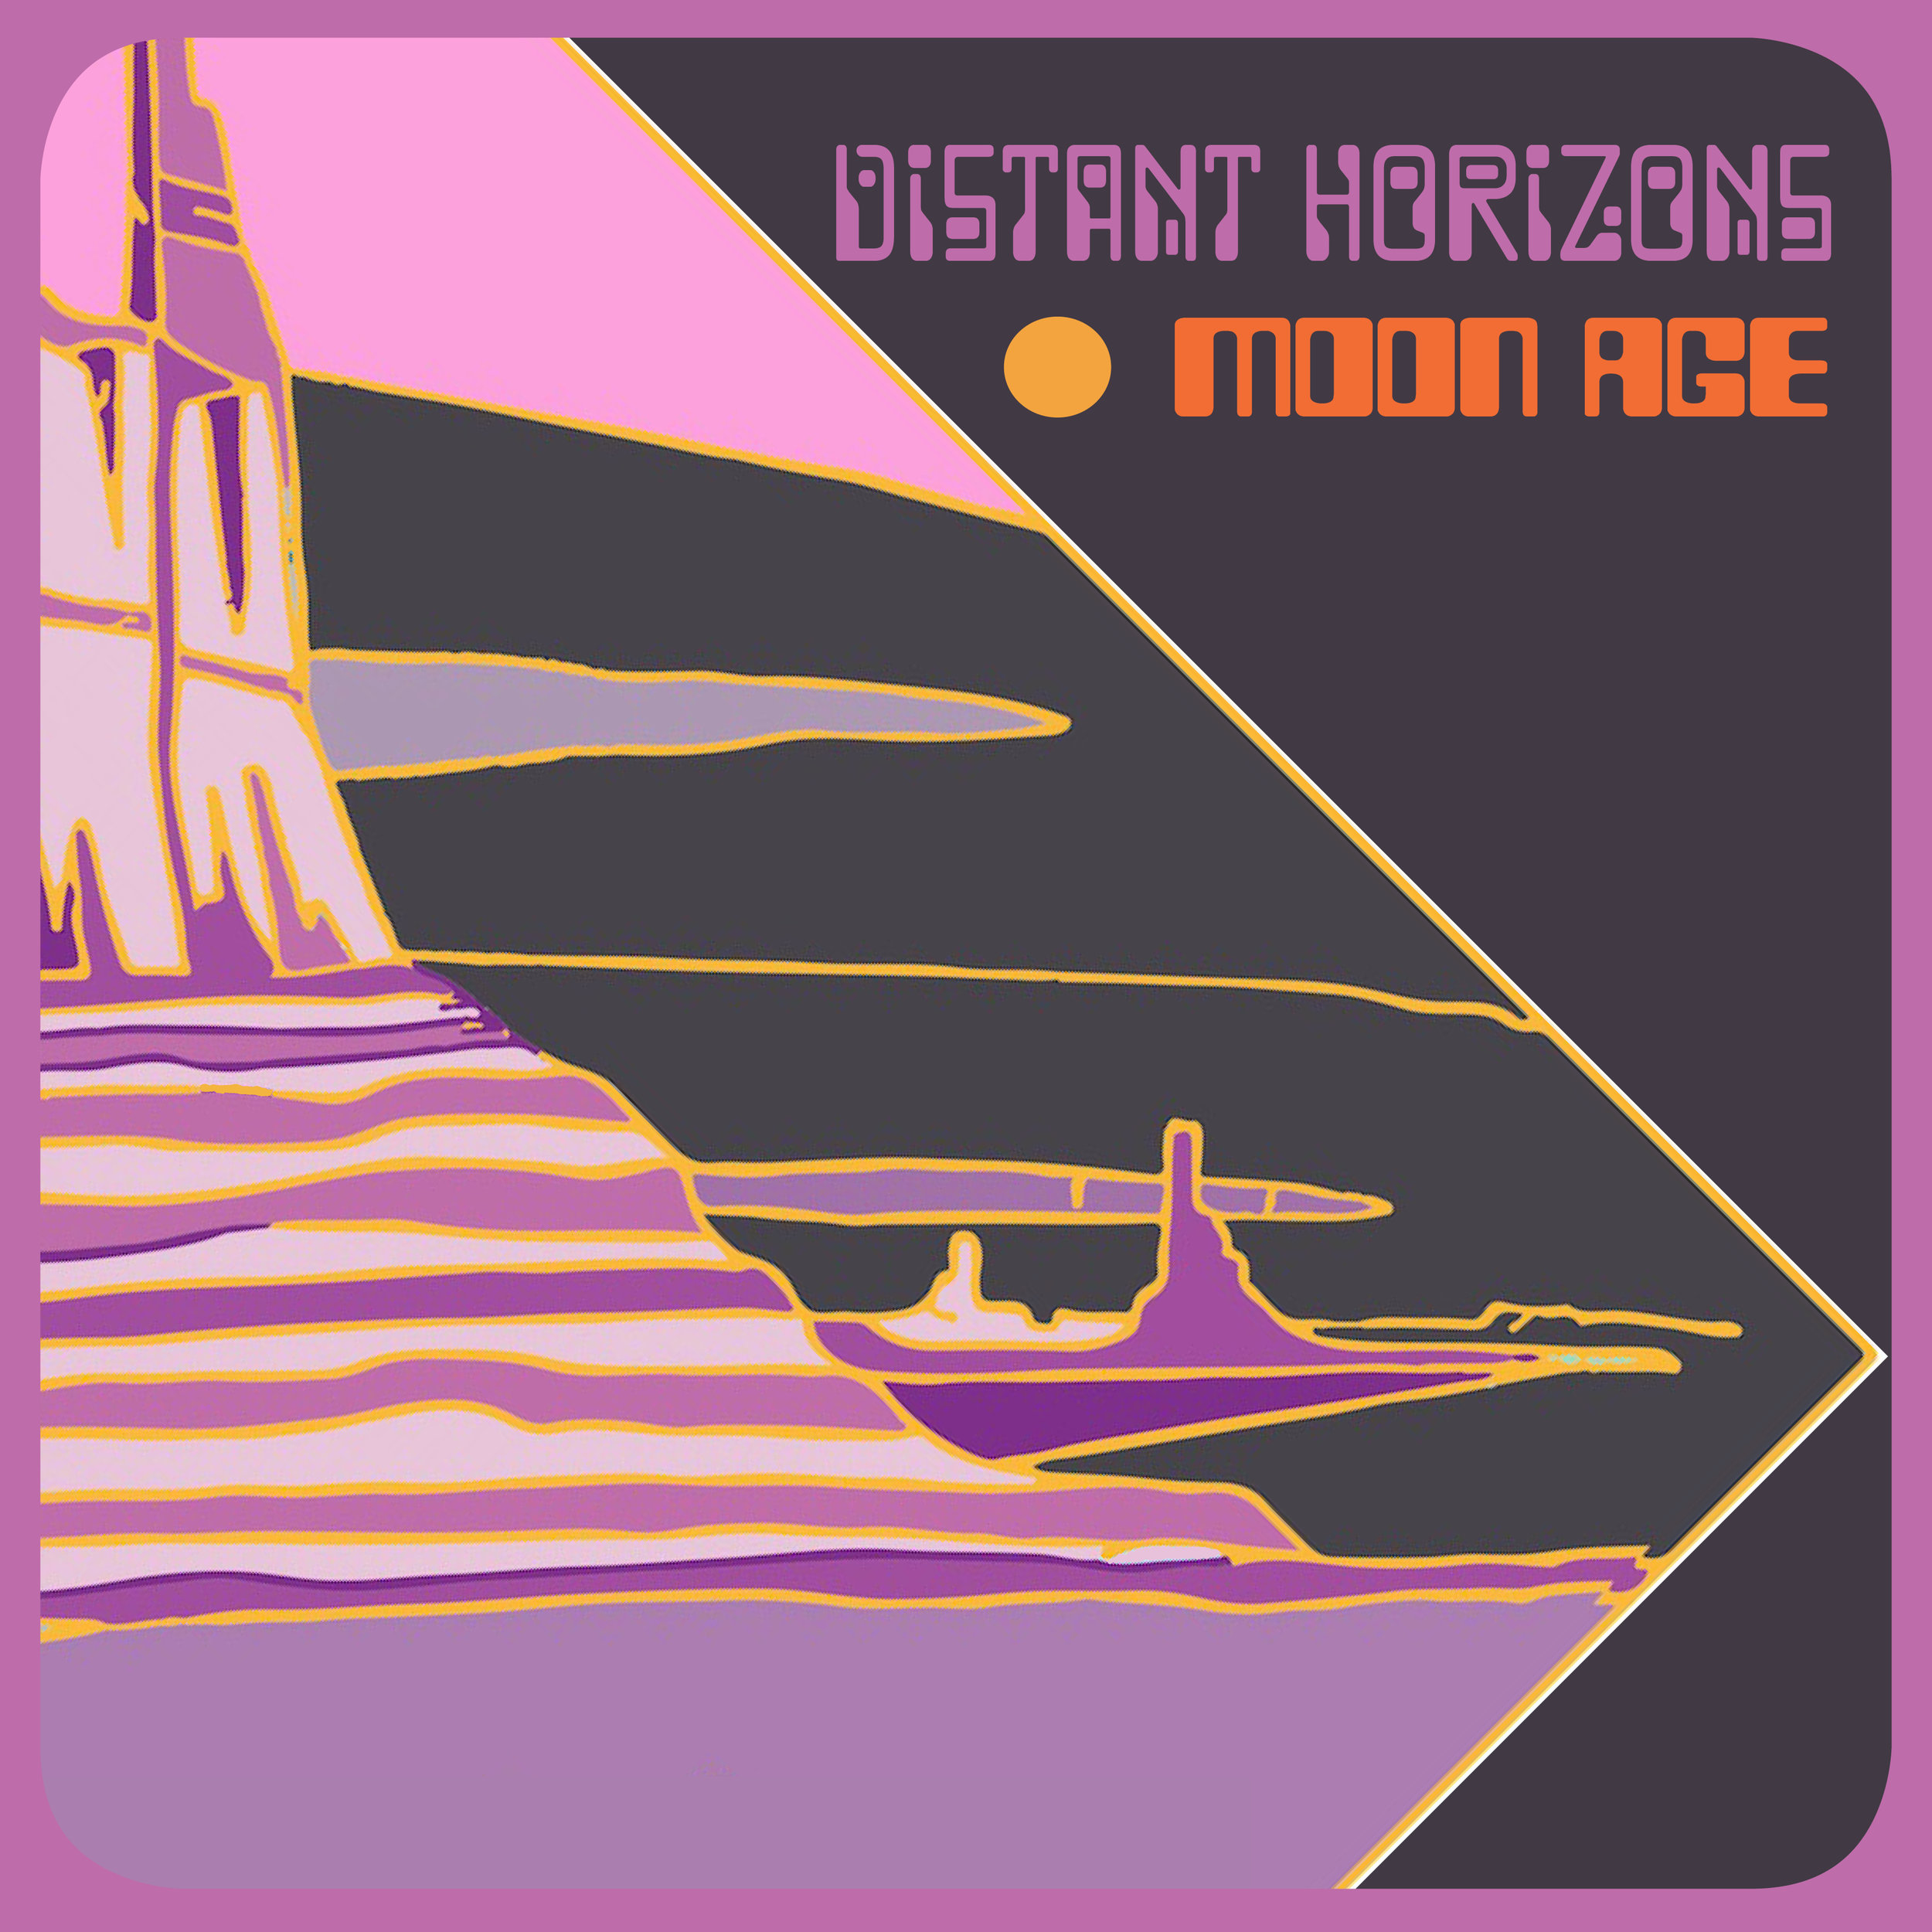 distant horizons back 6.jpg